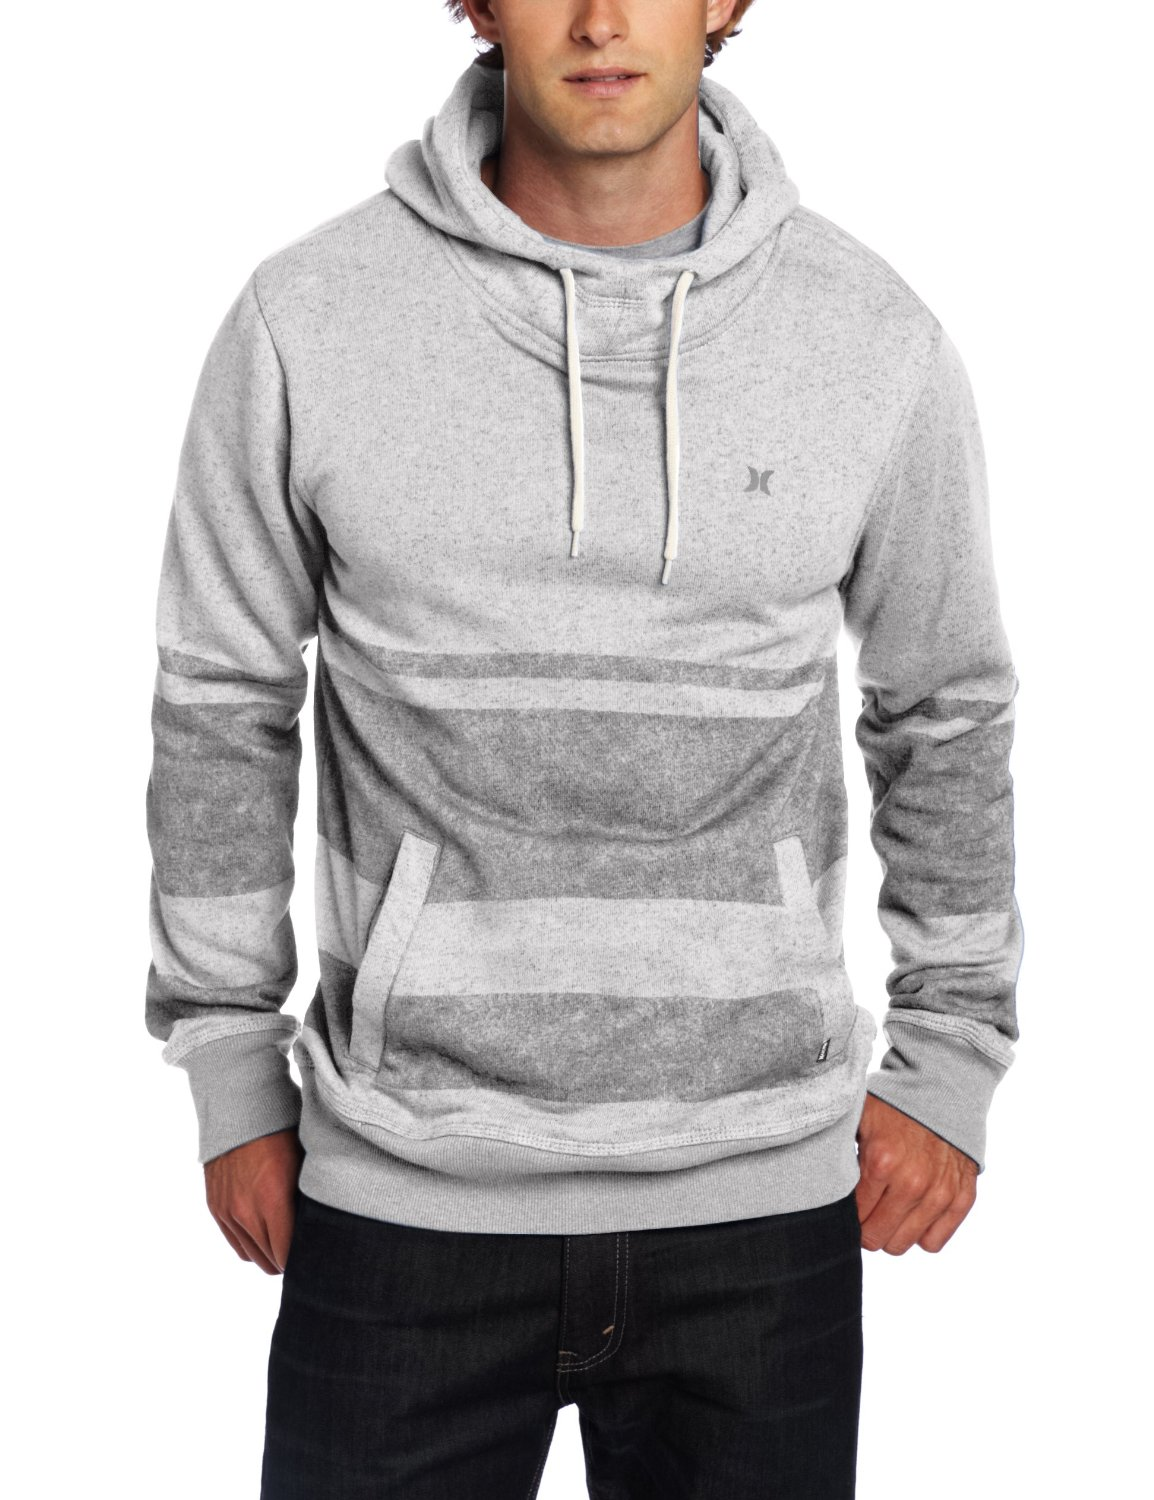 Browse SCHEELS' selection of men's athletic and casual hoodies and sweaters perfect for the cooler season by top-trending brands, including Under Armour, Nike and more. SCHEELS.